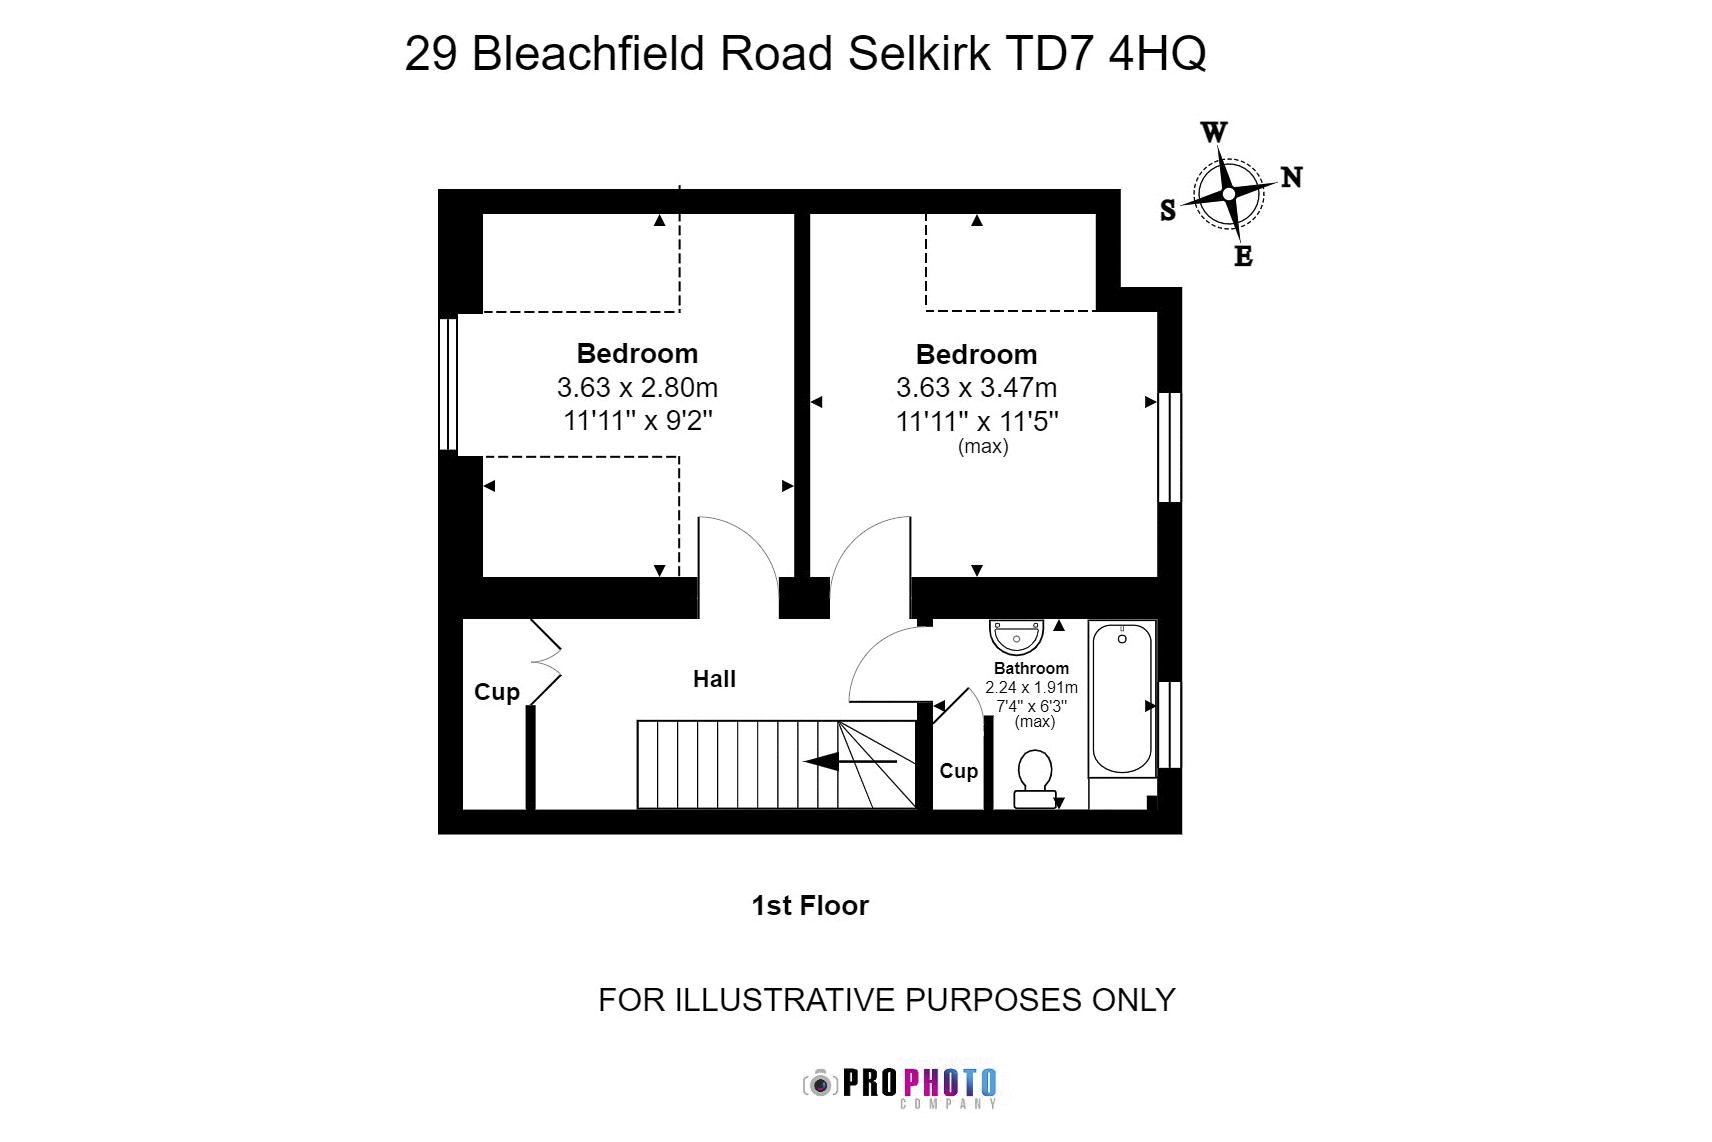 29 Bleachfield Road First Floor